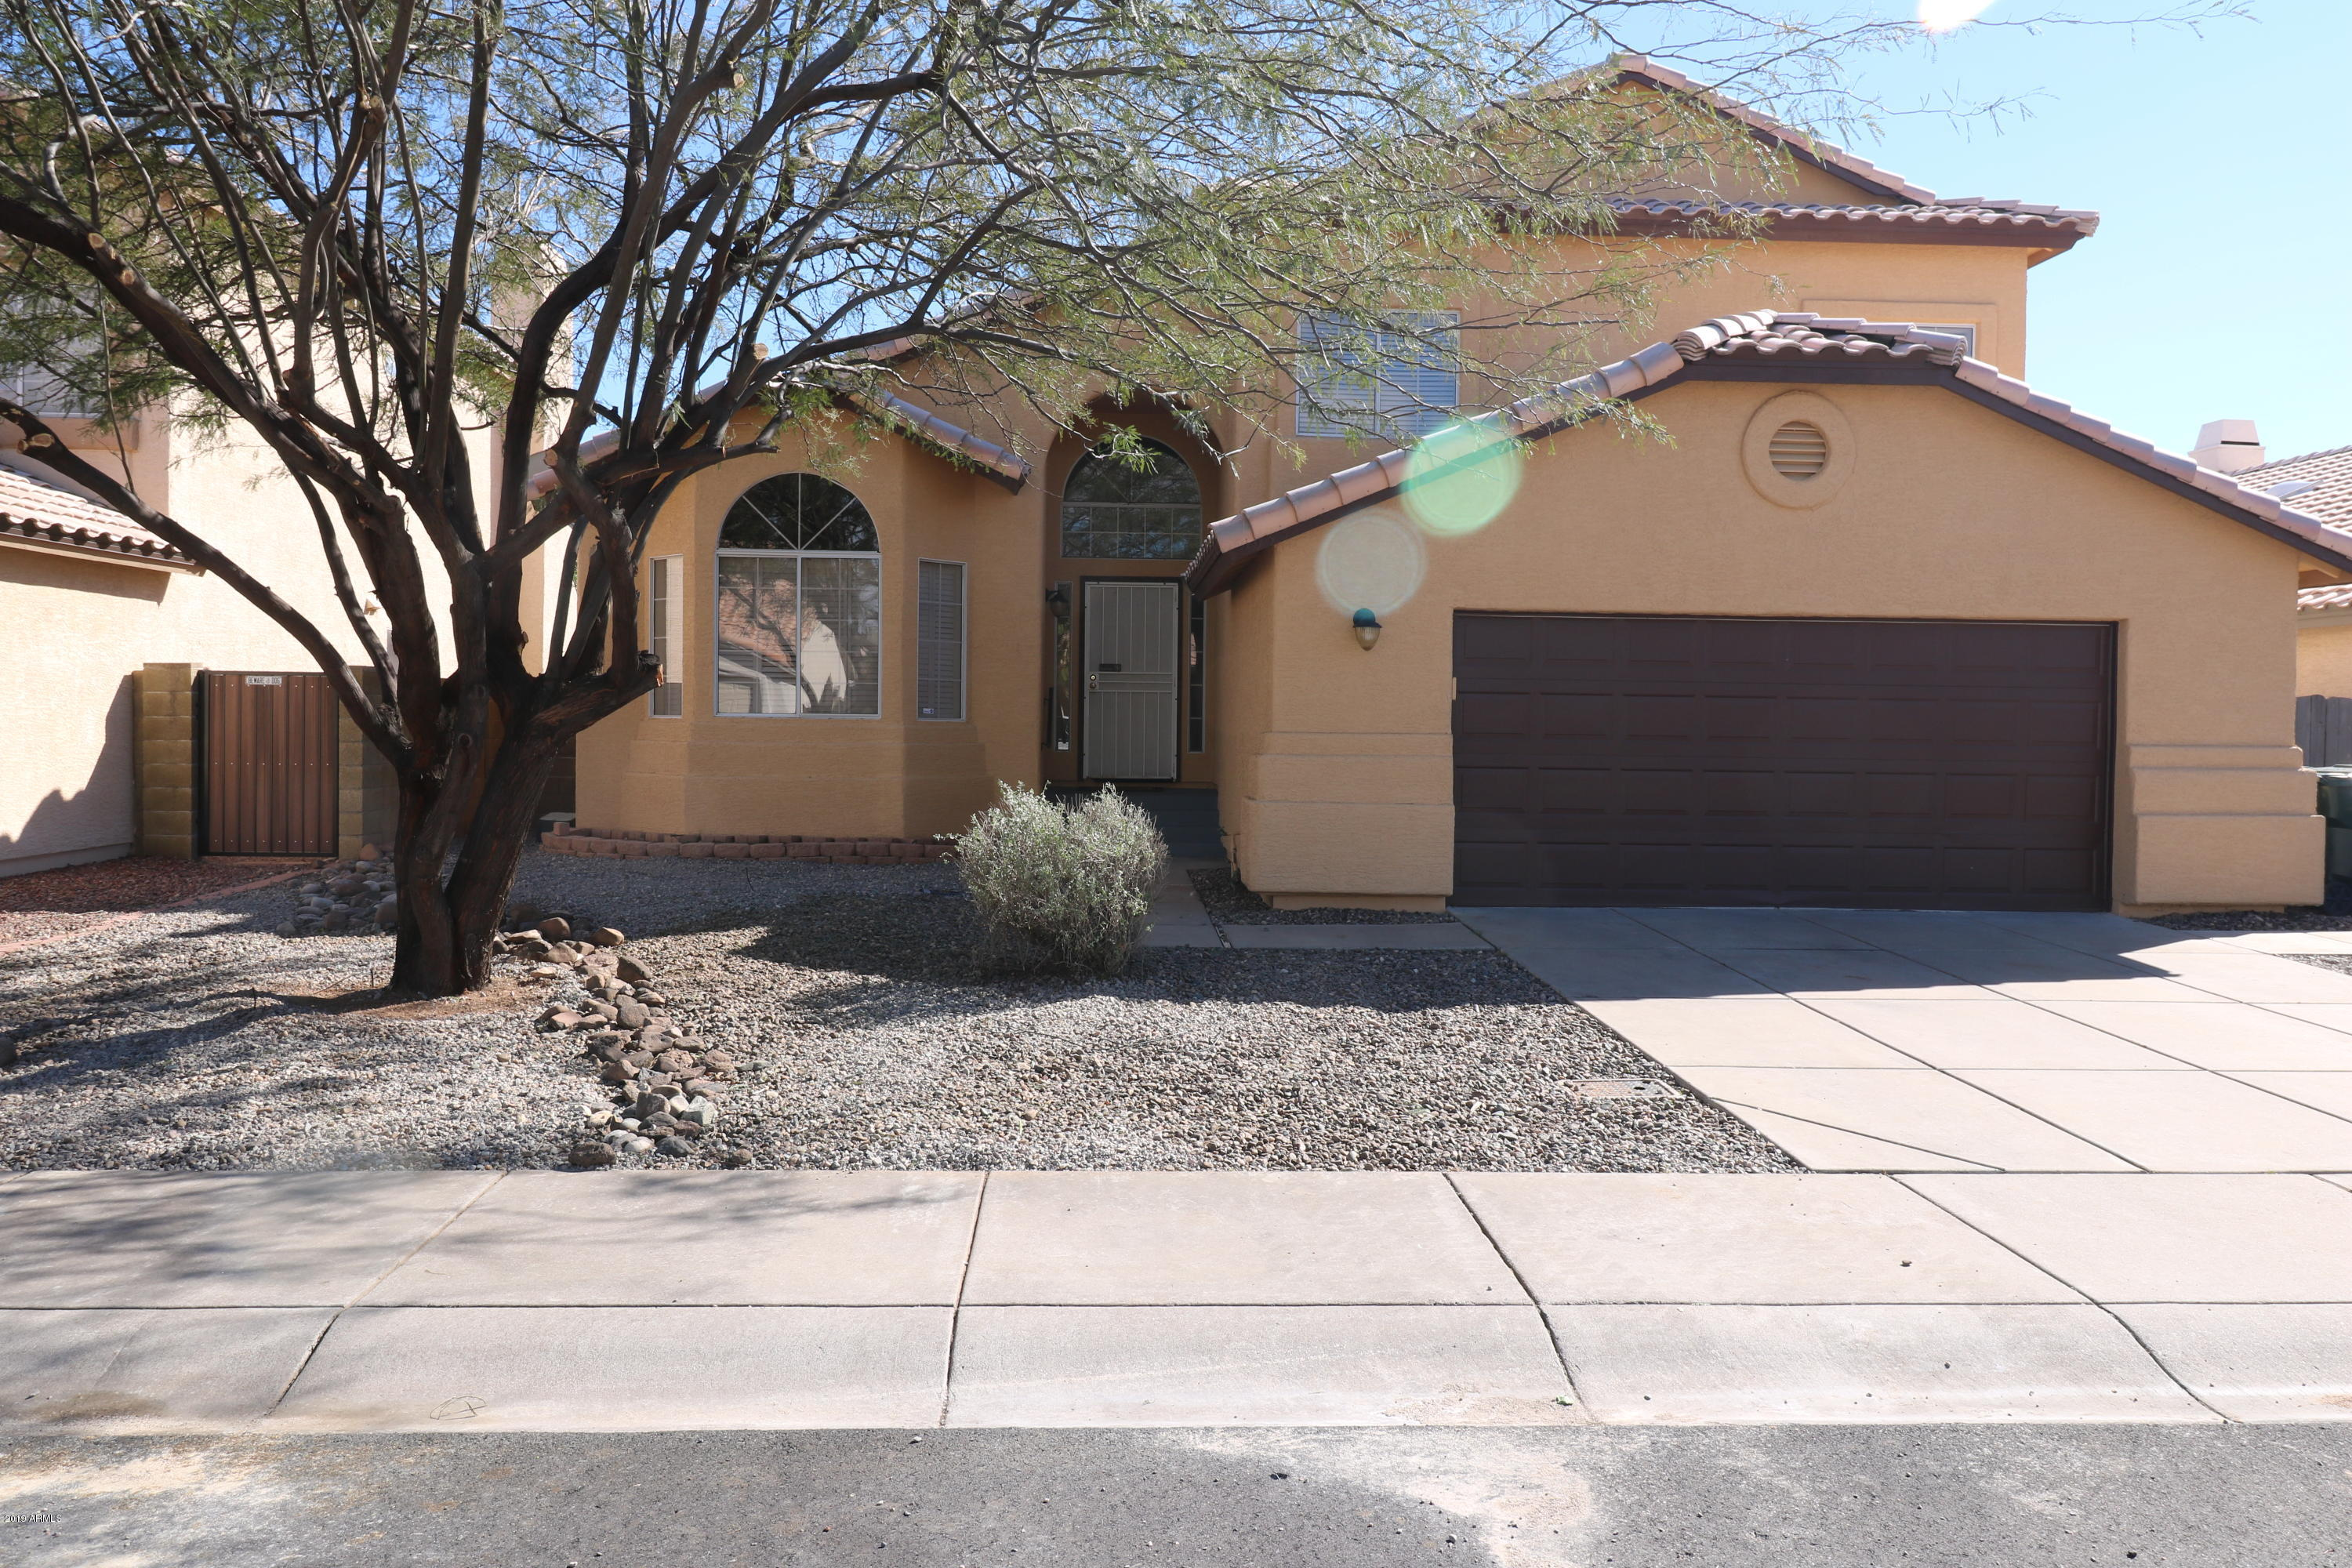 Photo for 2933 E Blackhawk Drive, Phoenix, AZ 85050 (MLS # 5896640)